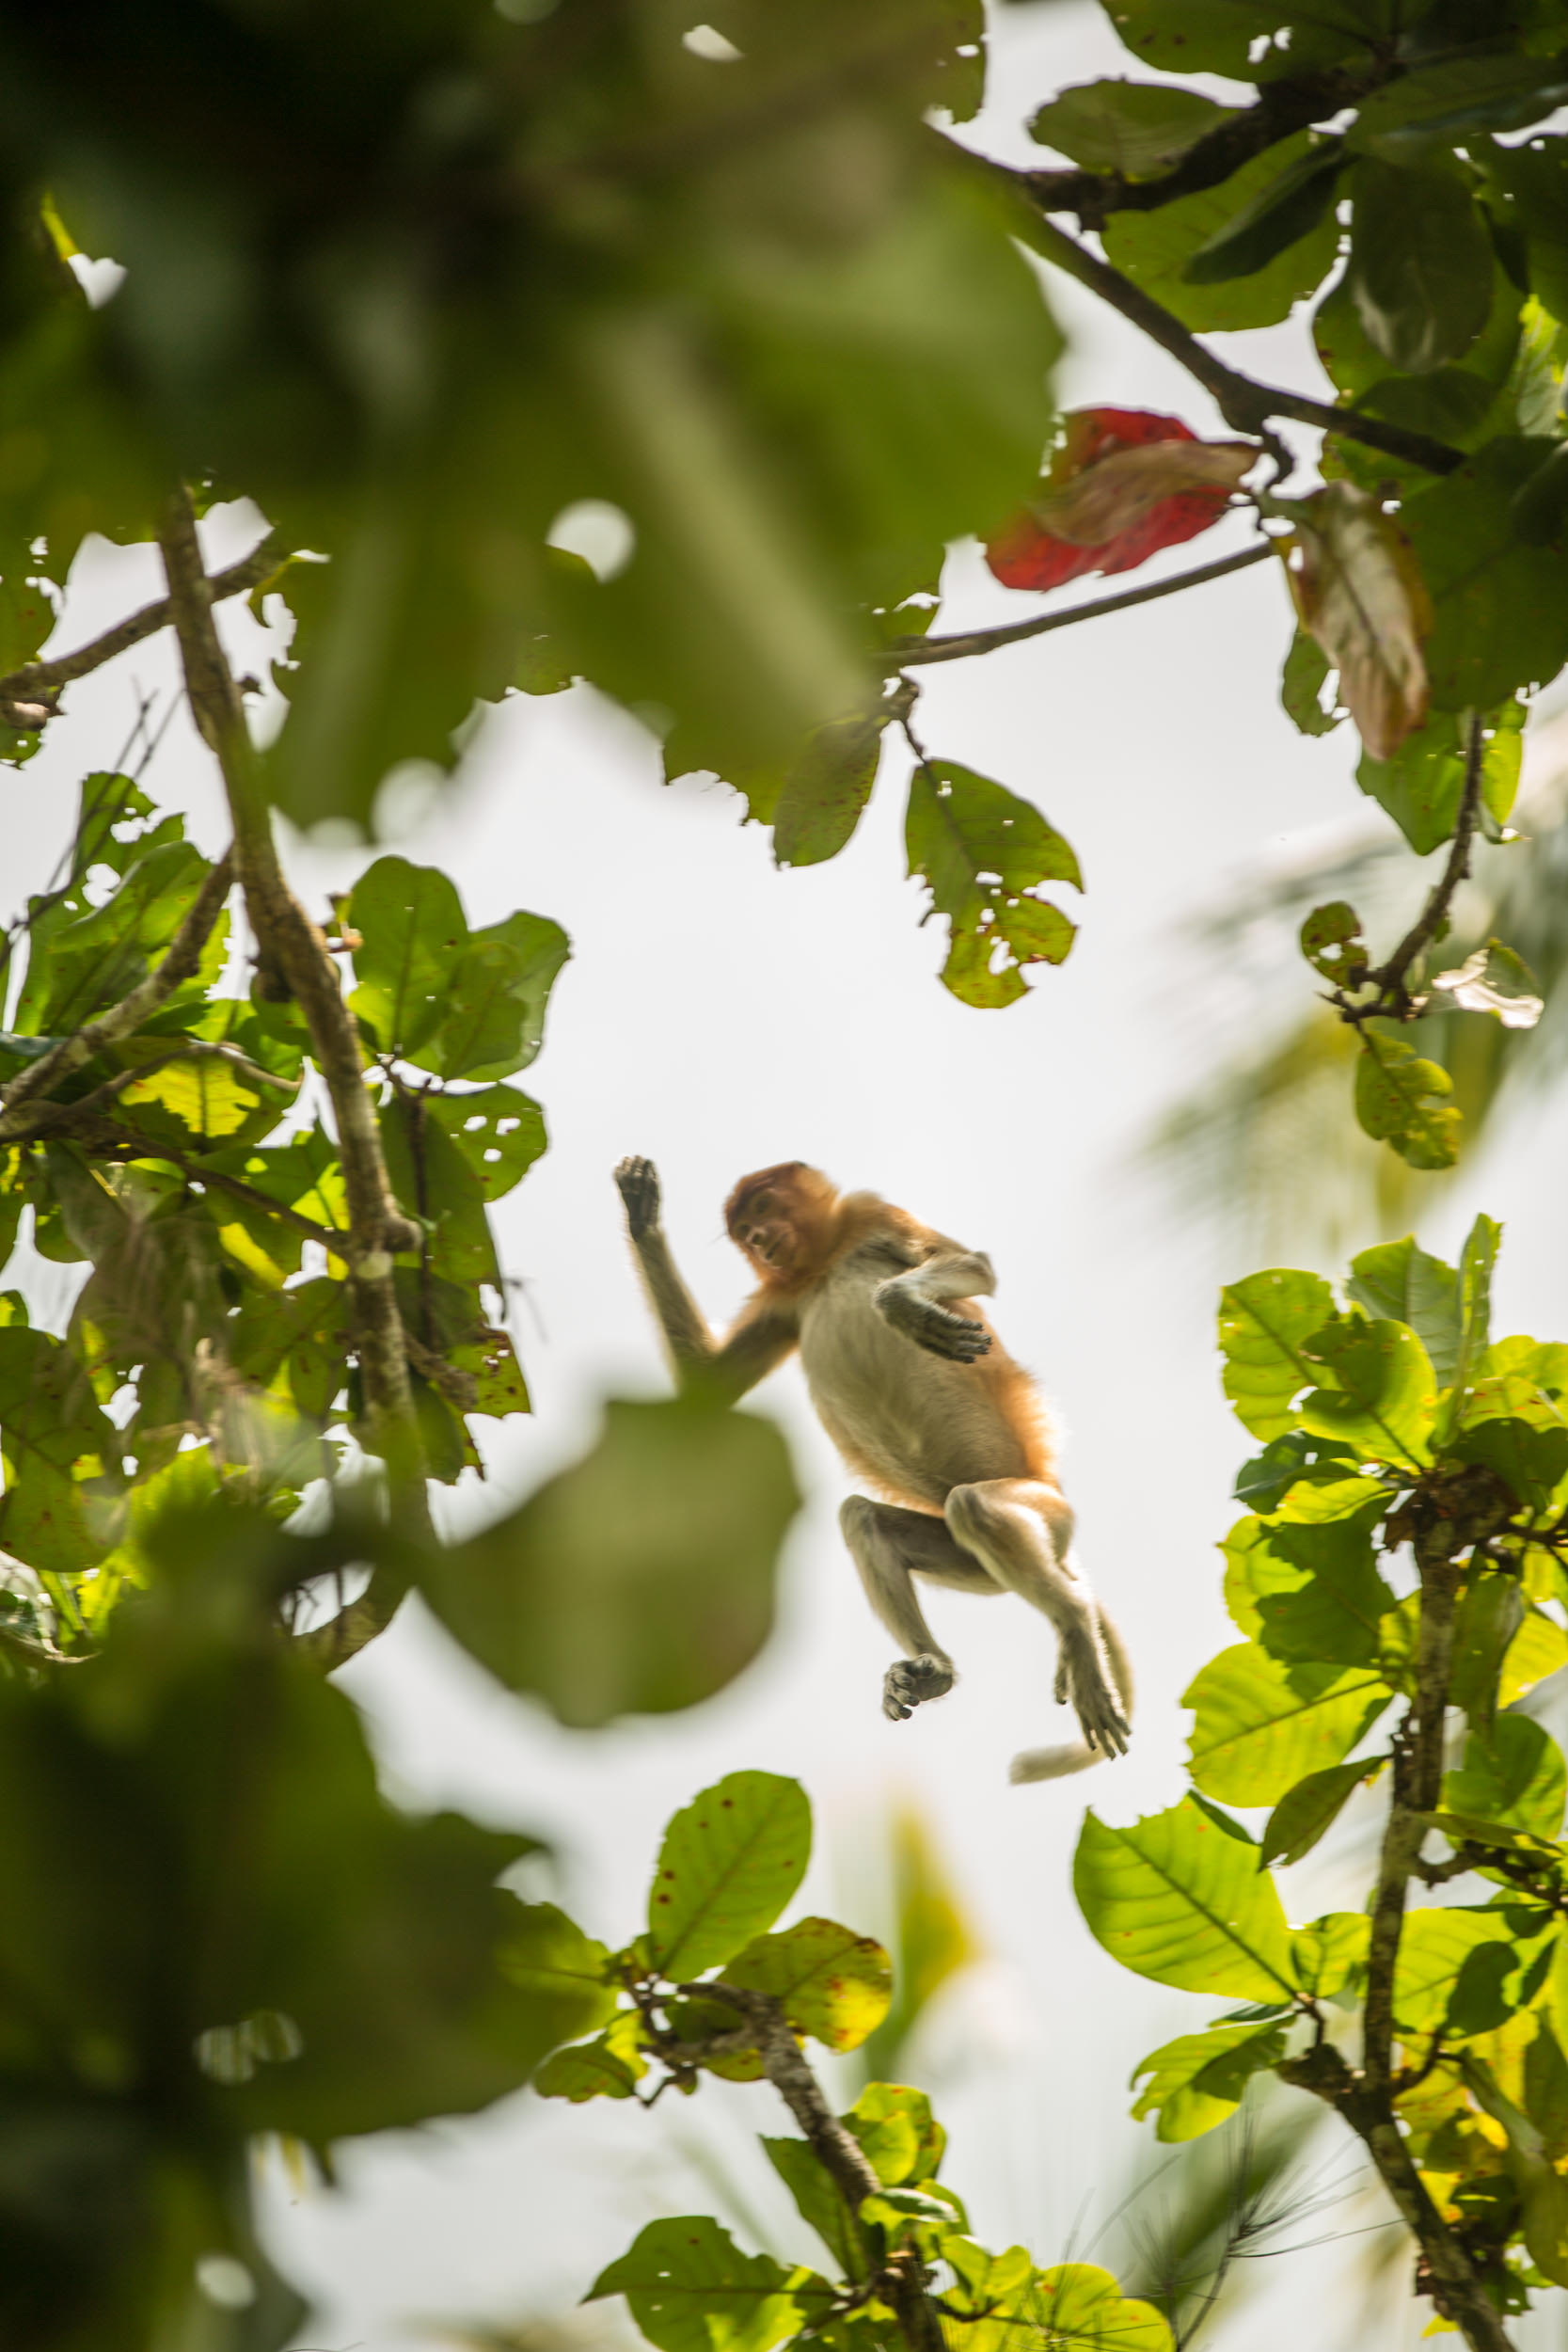 A proboscis monkey leaps between trees in the canopy.